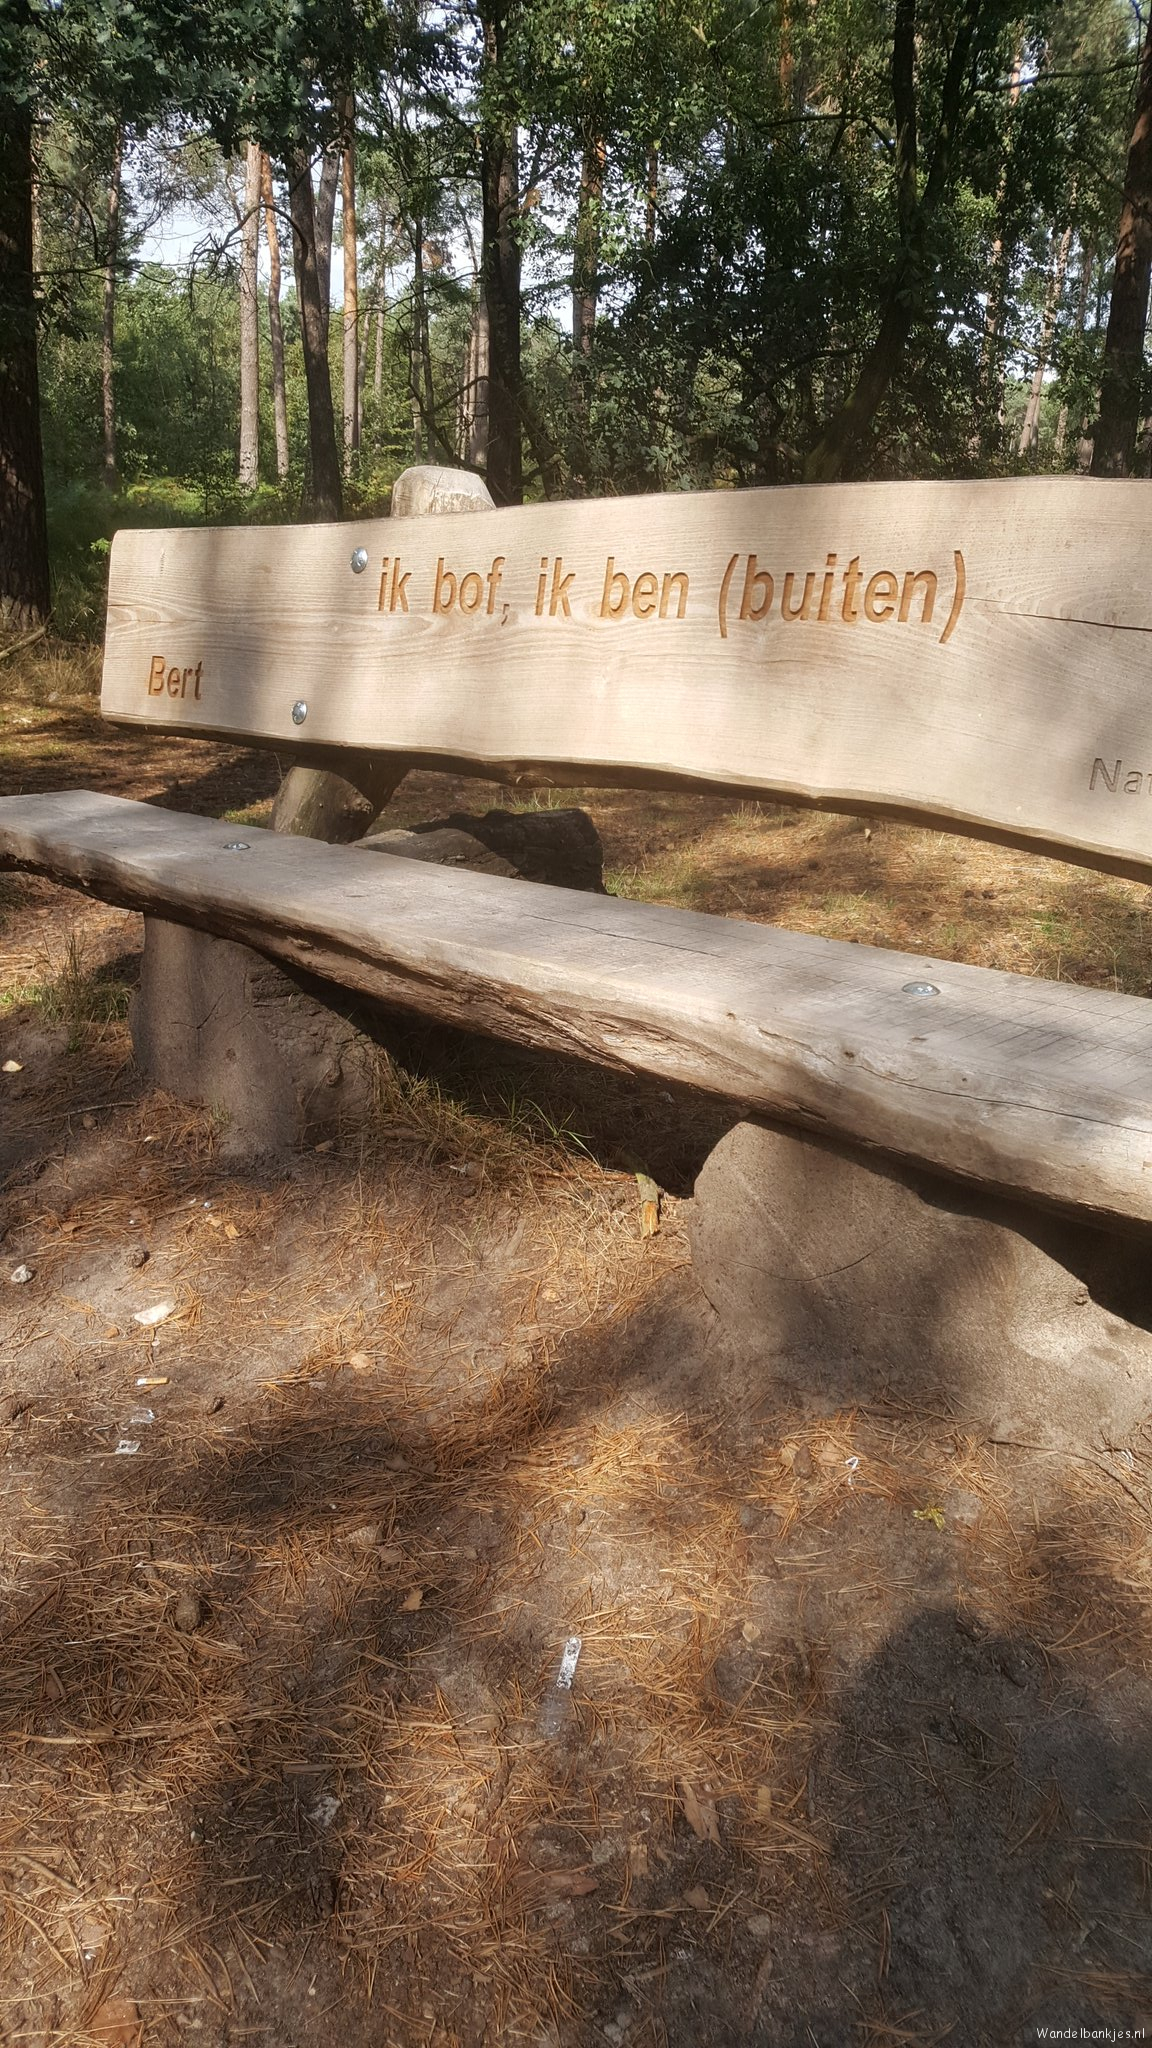 rt-greenheartstoc1-i-mof-i-am-outside-walking-benches-kampina-natuurmonumenten-https-t-co-9slqcfyalx